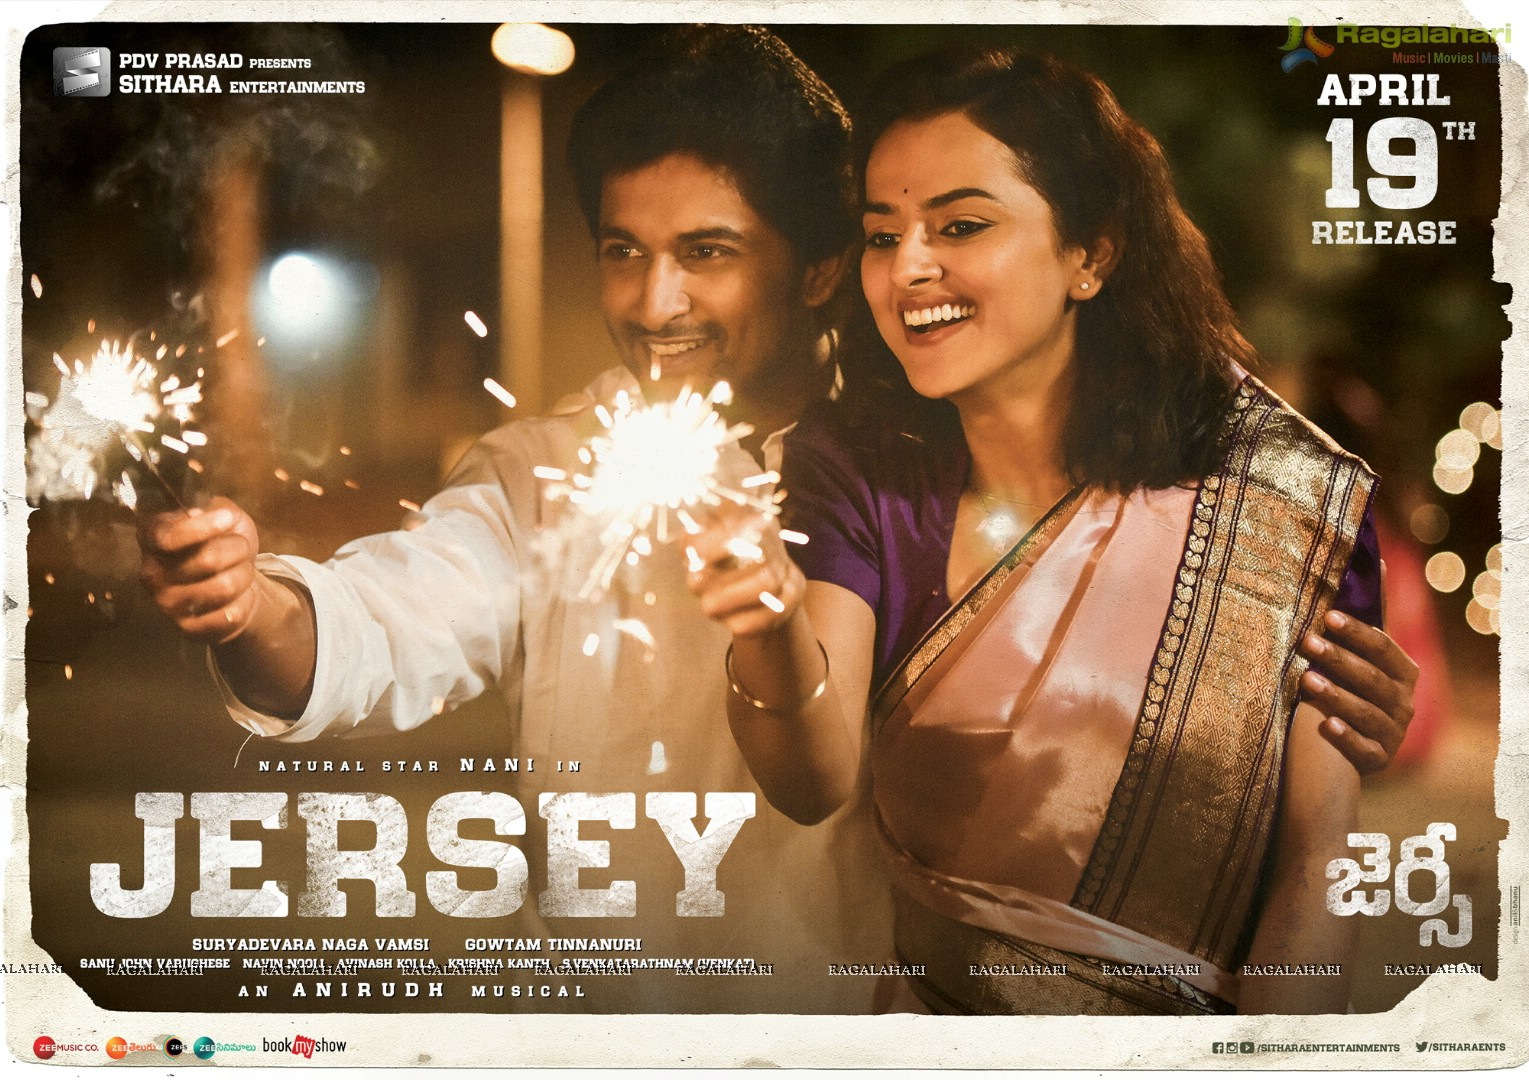 Nani's Jersey April 19th release date Poster